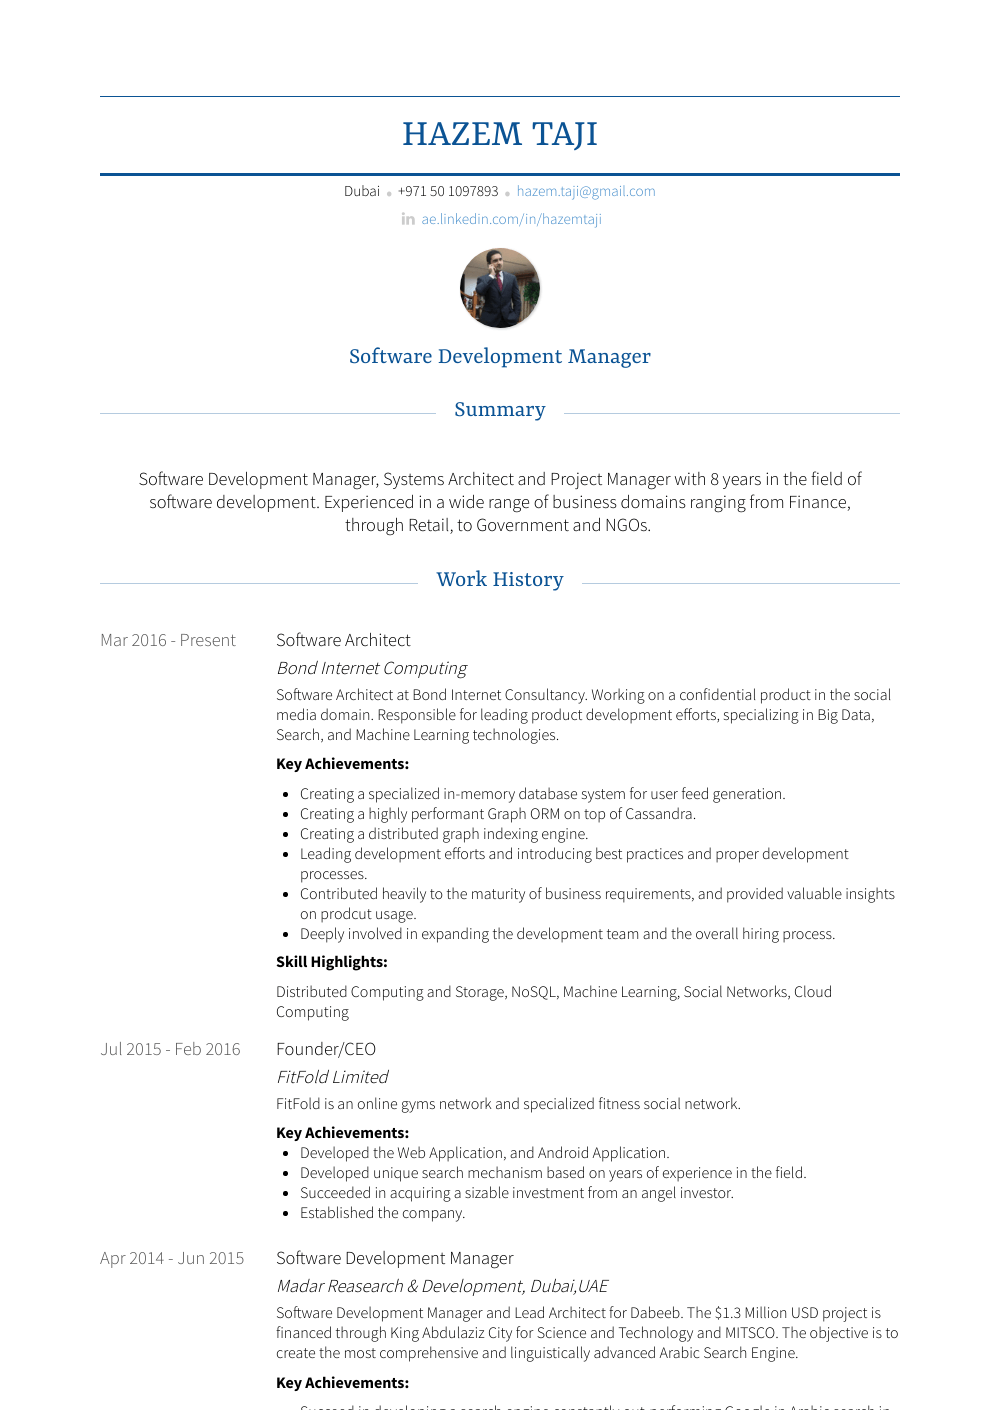 software development manager resumes